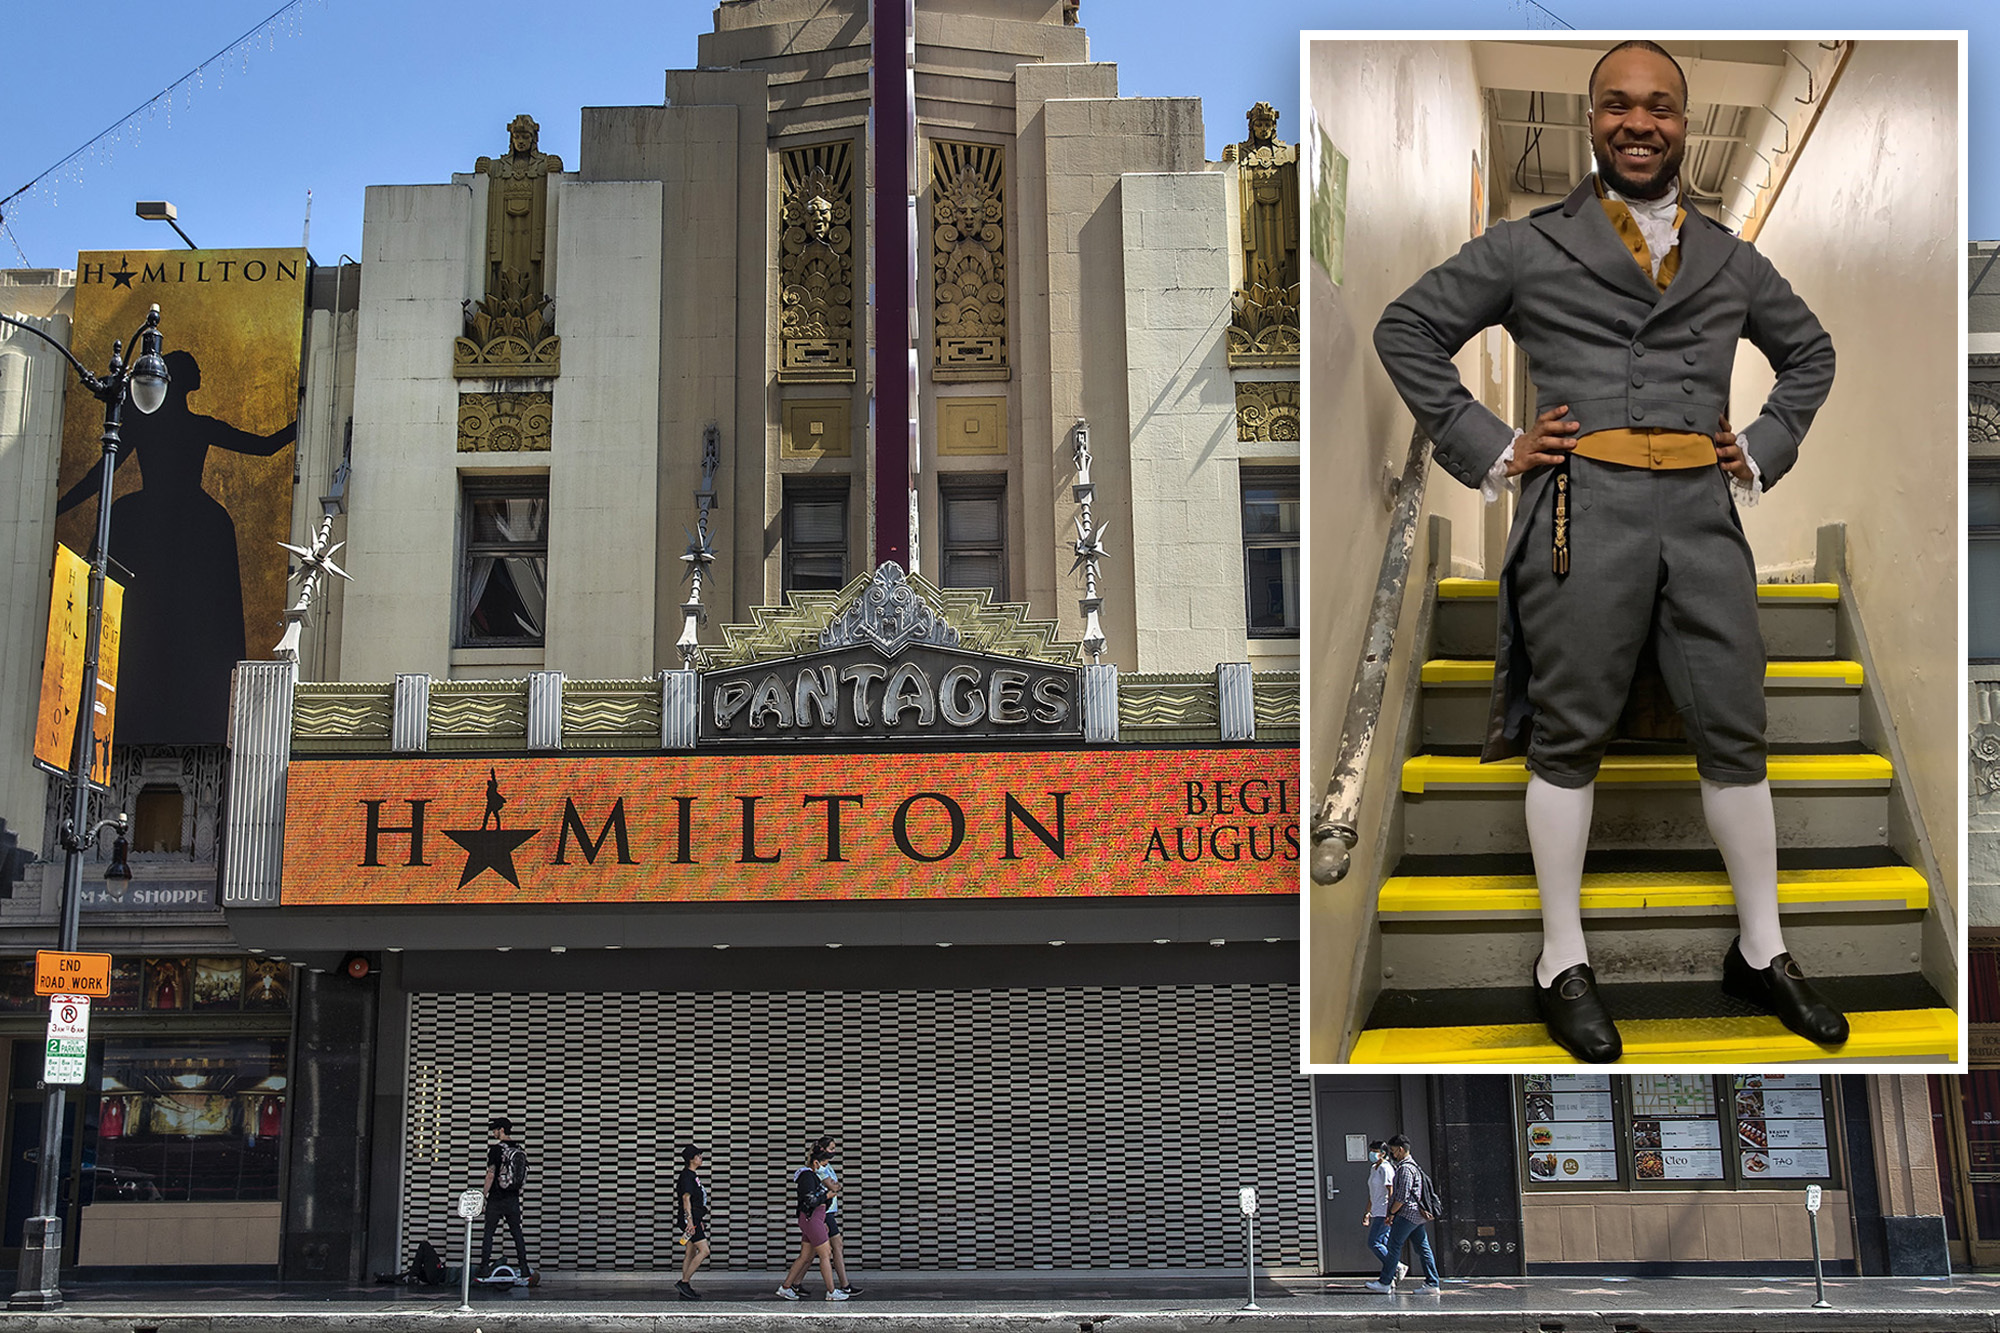 """Here we go: Black trans Hamilton actor who performed on Broadway sues the show over claims producers fired """"them"""" from LA production for requesting gender neutral dressing room"""